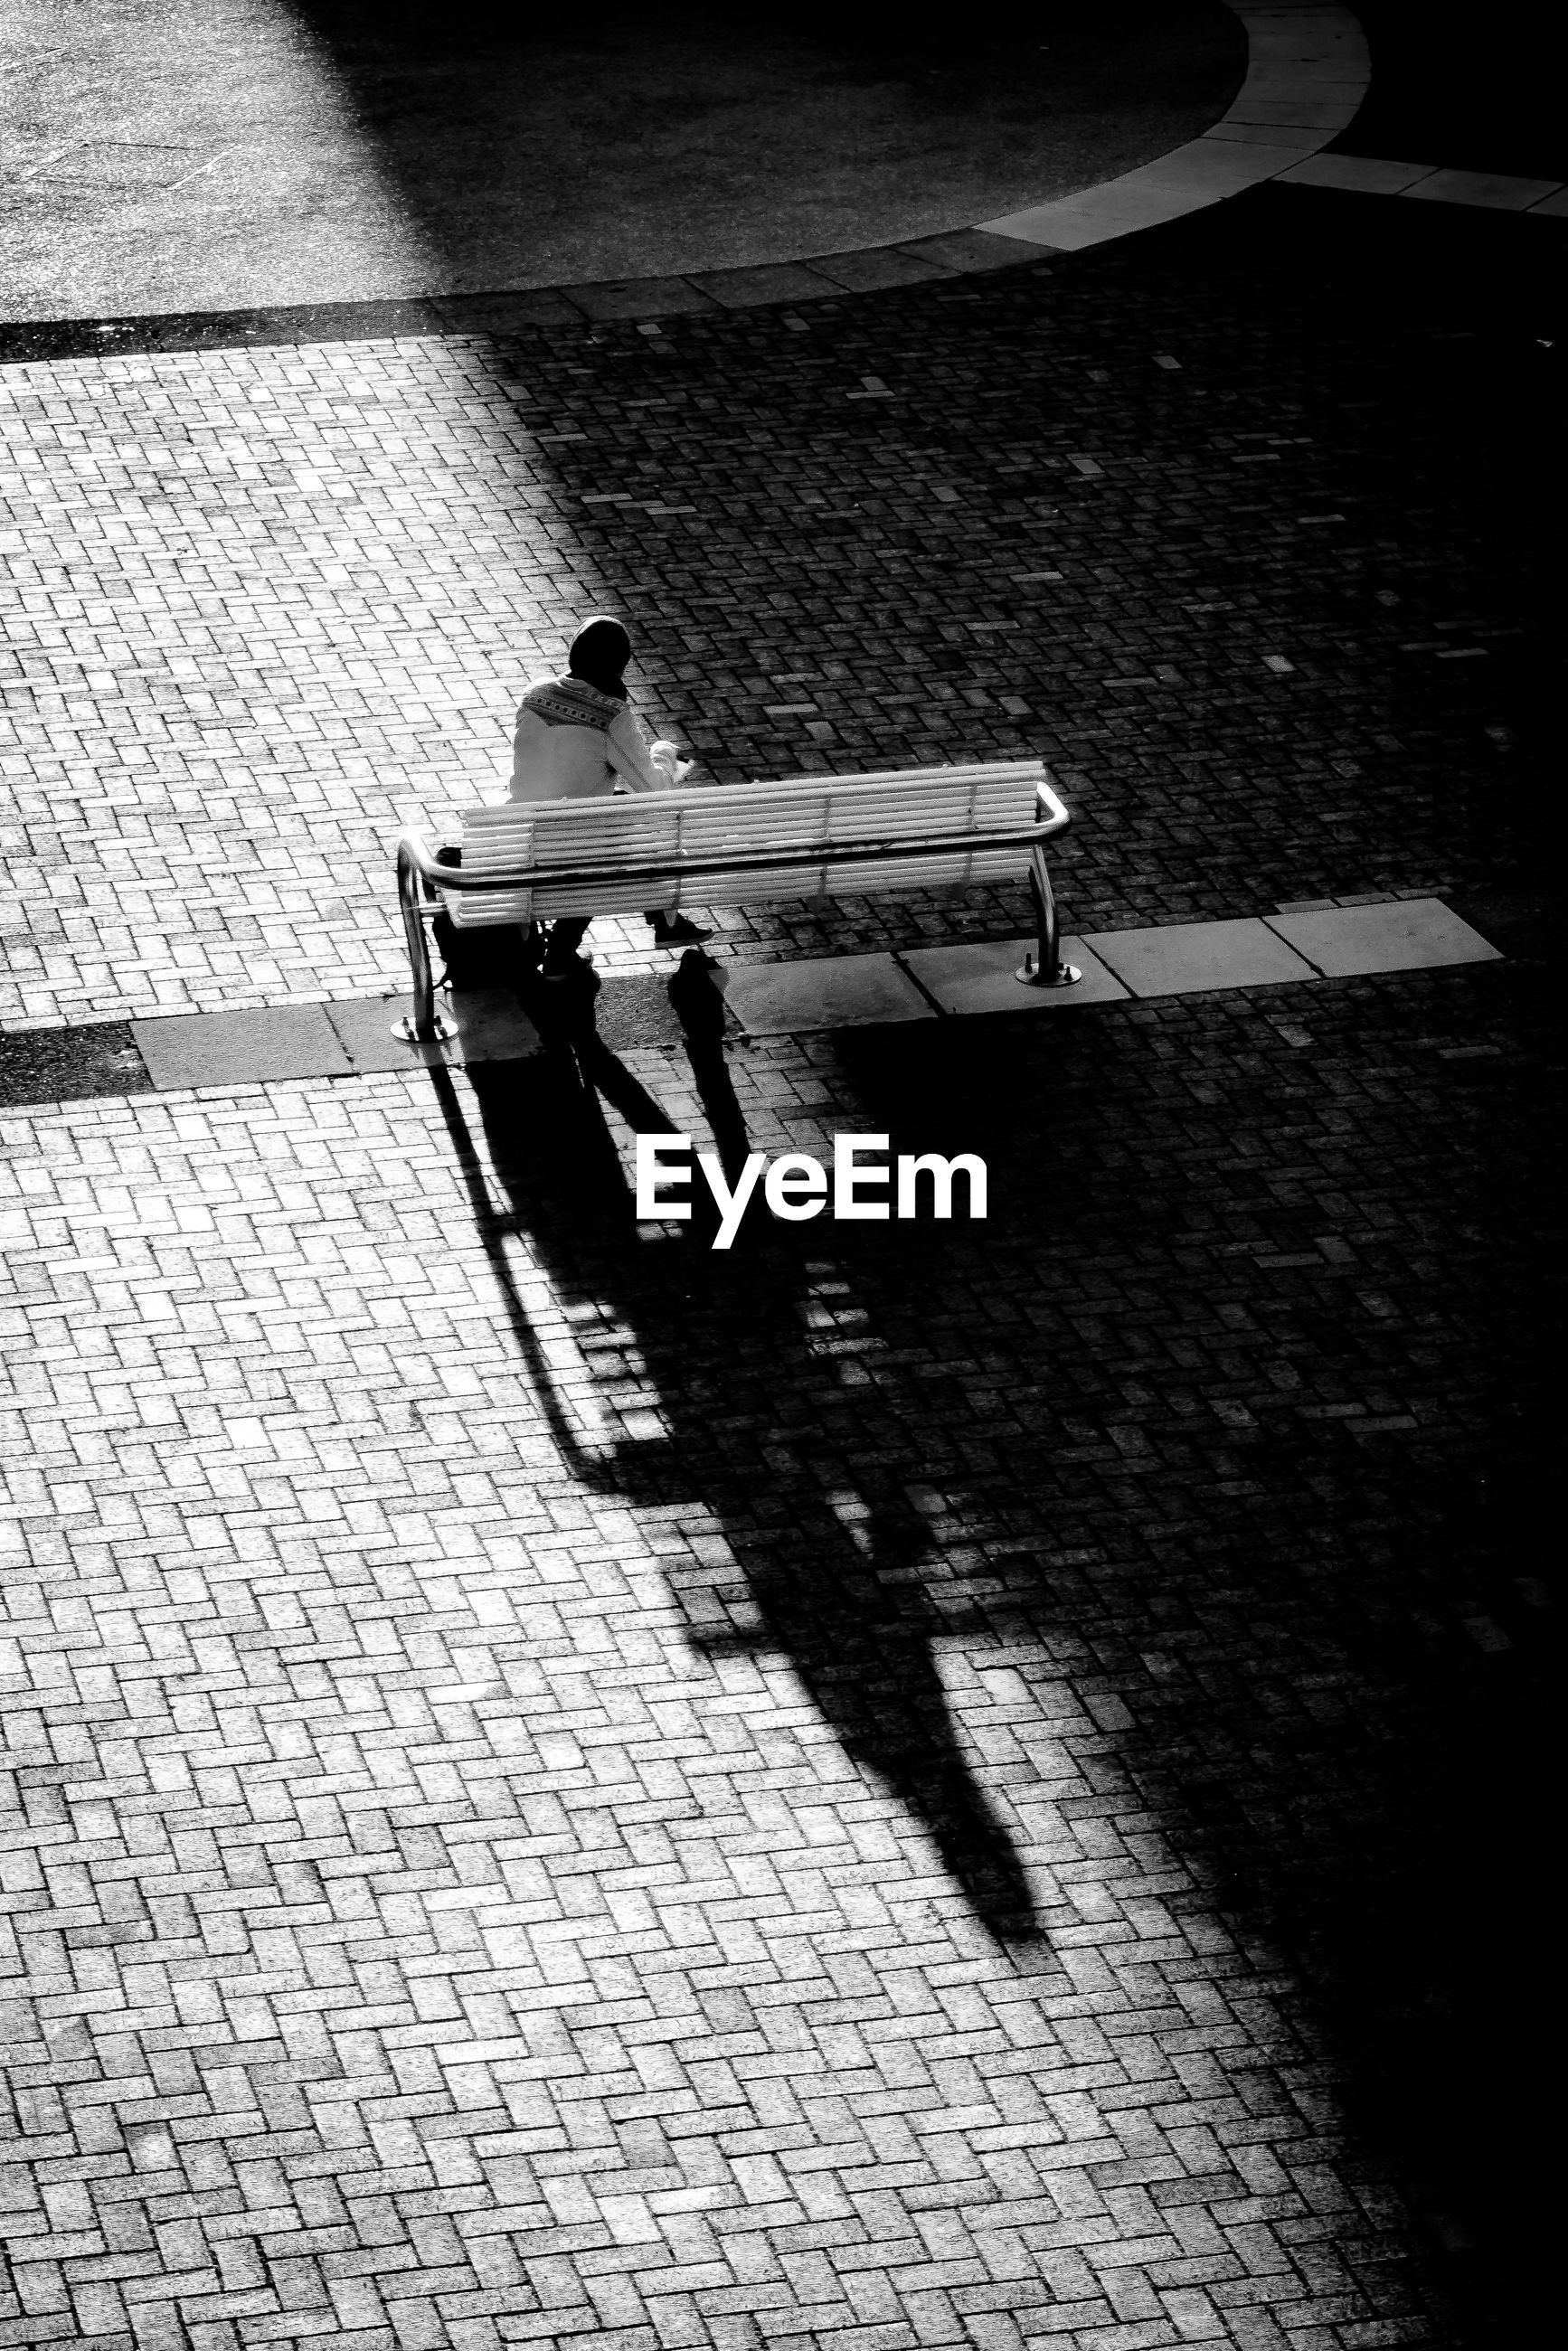 HIGH ANGLE VIEW OF PERSON ON SIDEWALK